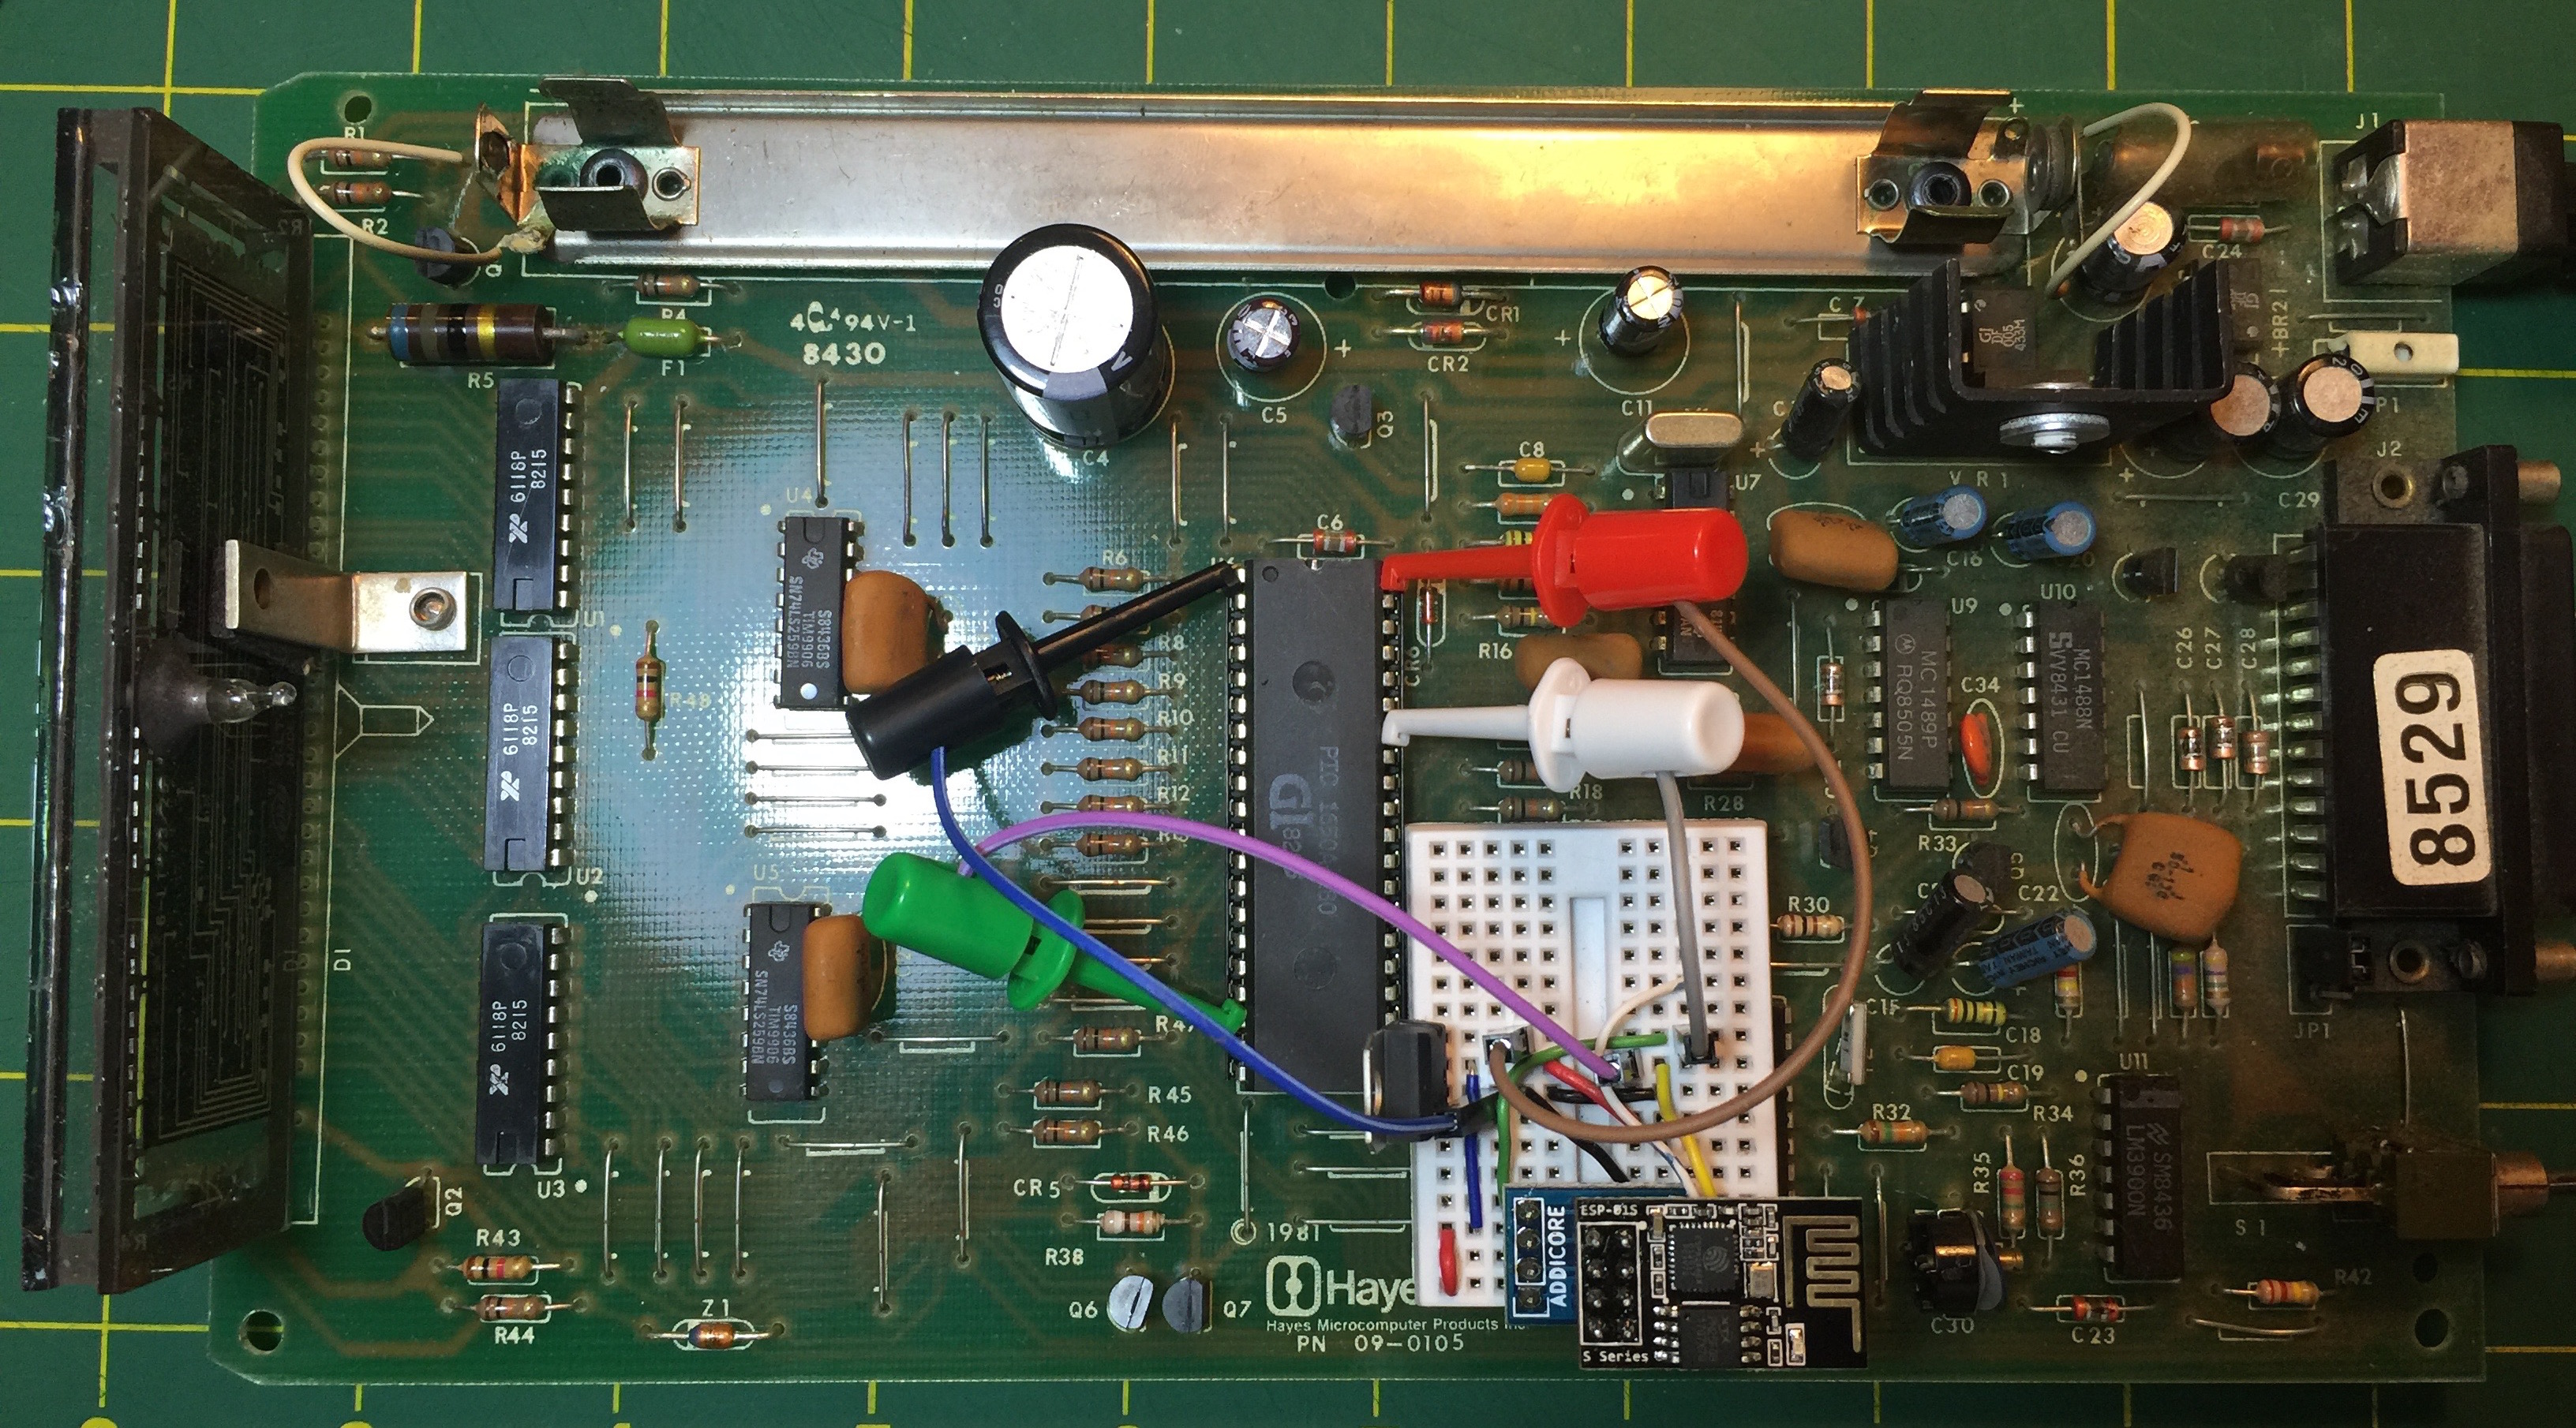 Uncategorized Commodore 64 Rev A Motherboard Schematics From 1982 Hayes Chronograph With Prototype